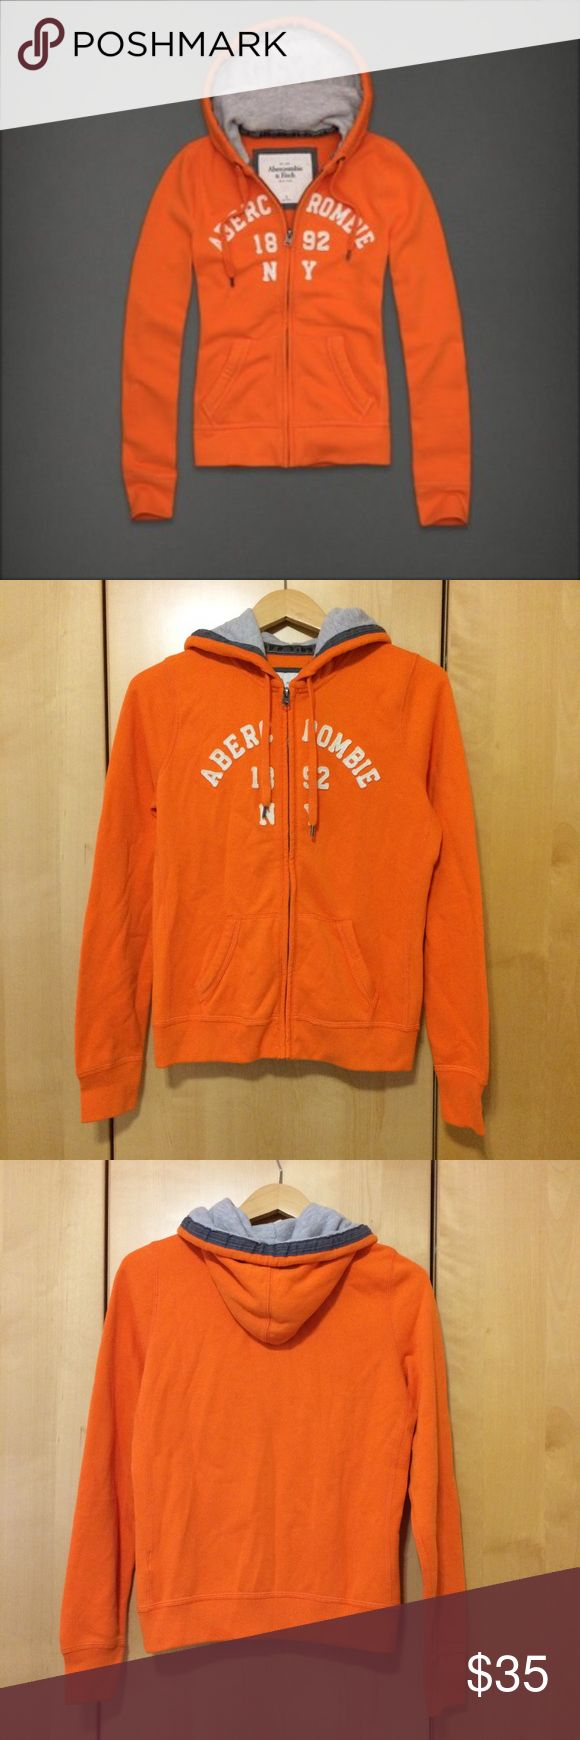 NWT ABERCROMBIE & FITCH Women's Orange Hoodie New with Tag A&F Abigail Orange Zip Up Hoodie Sweater Jacket. CONDITION: Never worn with price tag still attached. WOMEN'S SIZE LARGE. Very soft! Abercrombie & Fitch Jackets & Coats